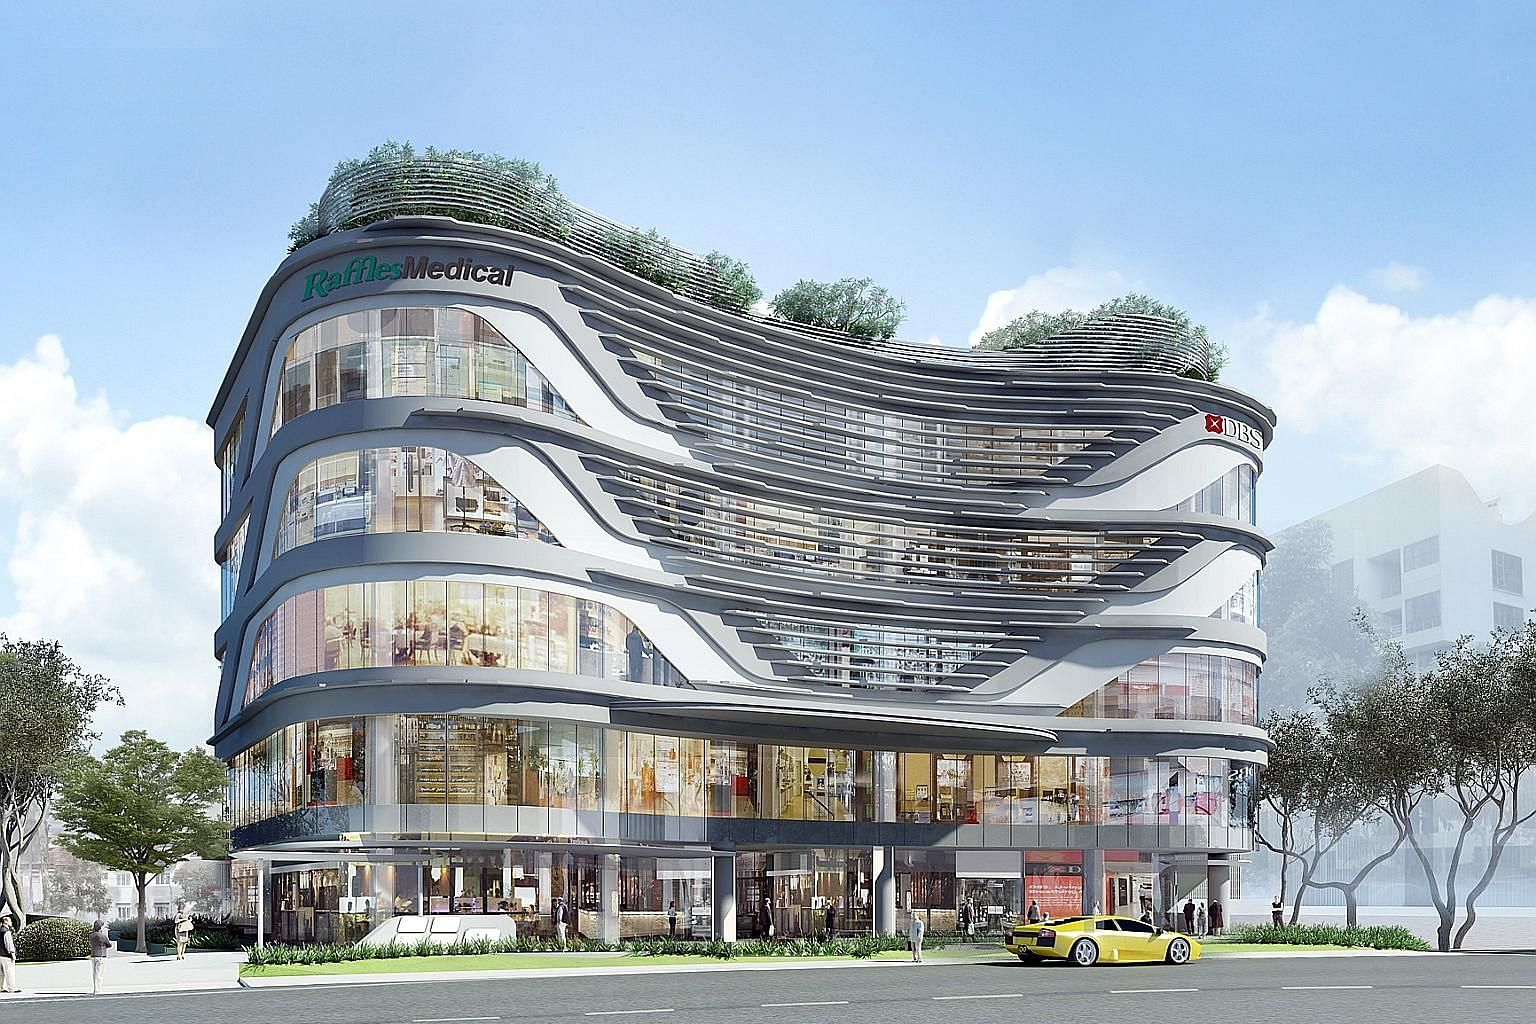 An artist's impression of Raffles Holland V, on track to be finished in the first quarter. Raffles Medical says the planned completion of projects such as Raffles Holland V, as well as its expansion to regional markets, will position the group well f